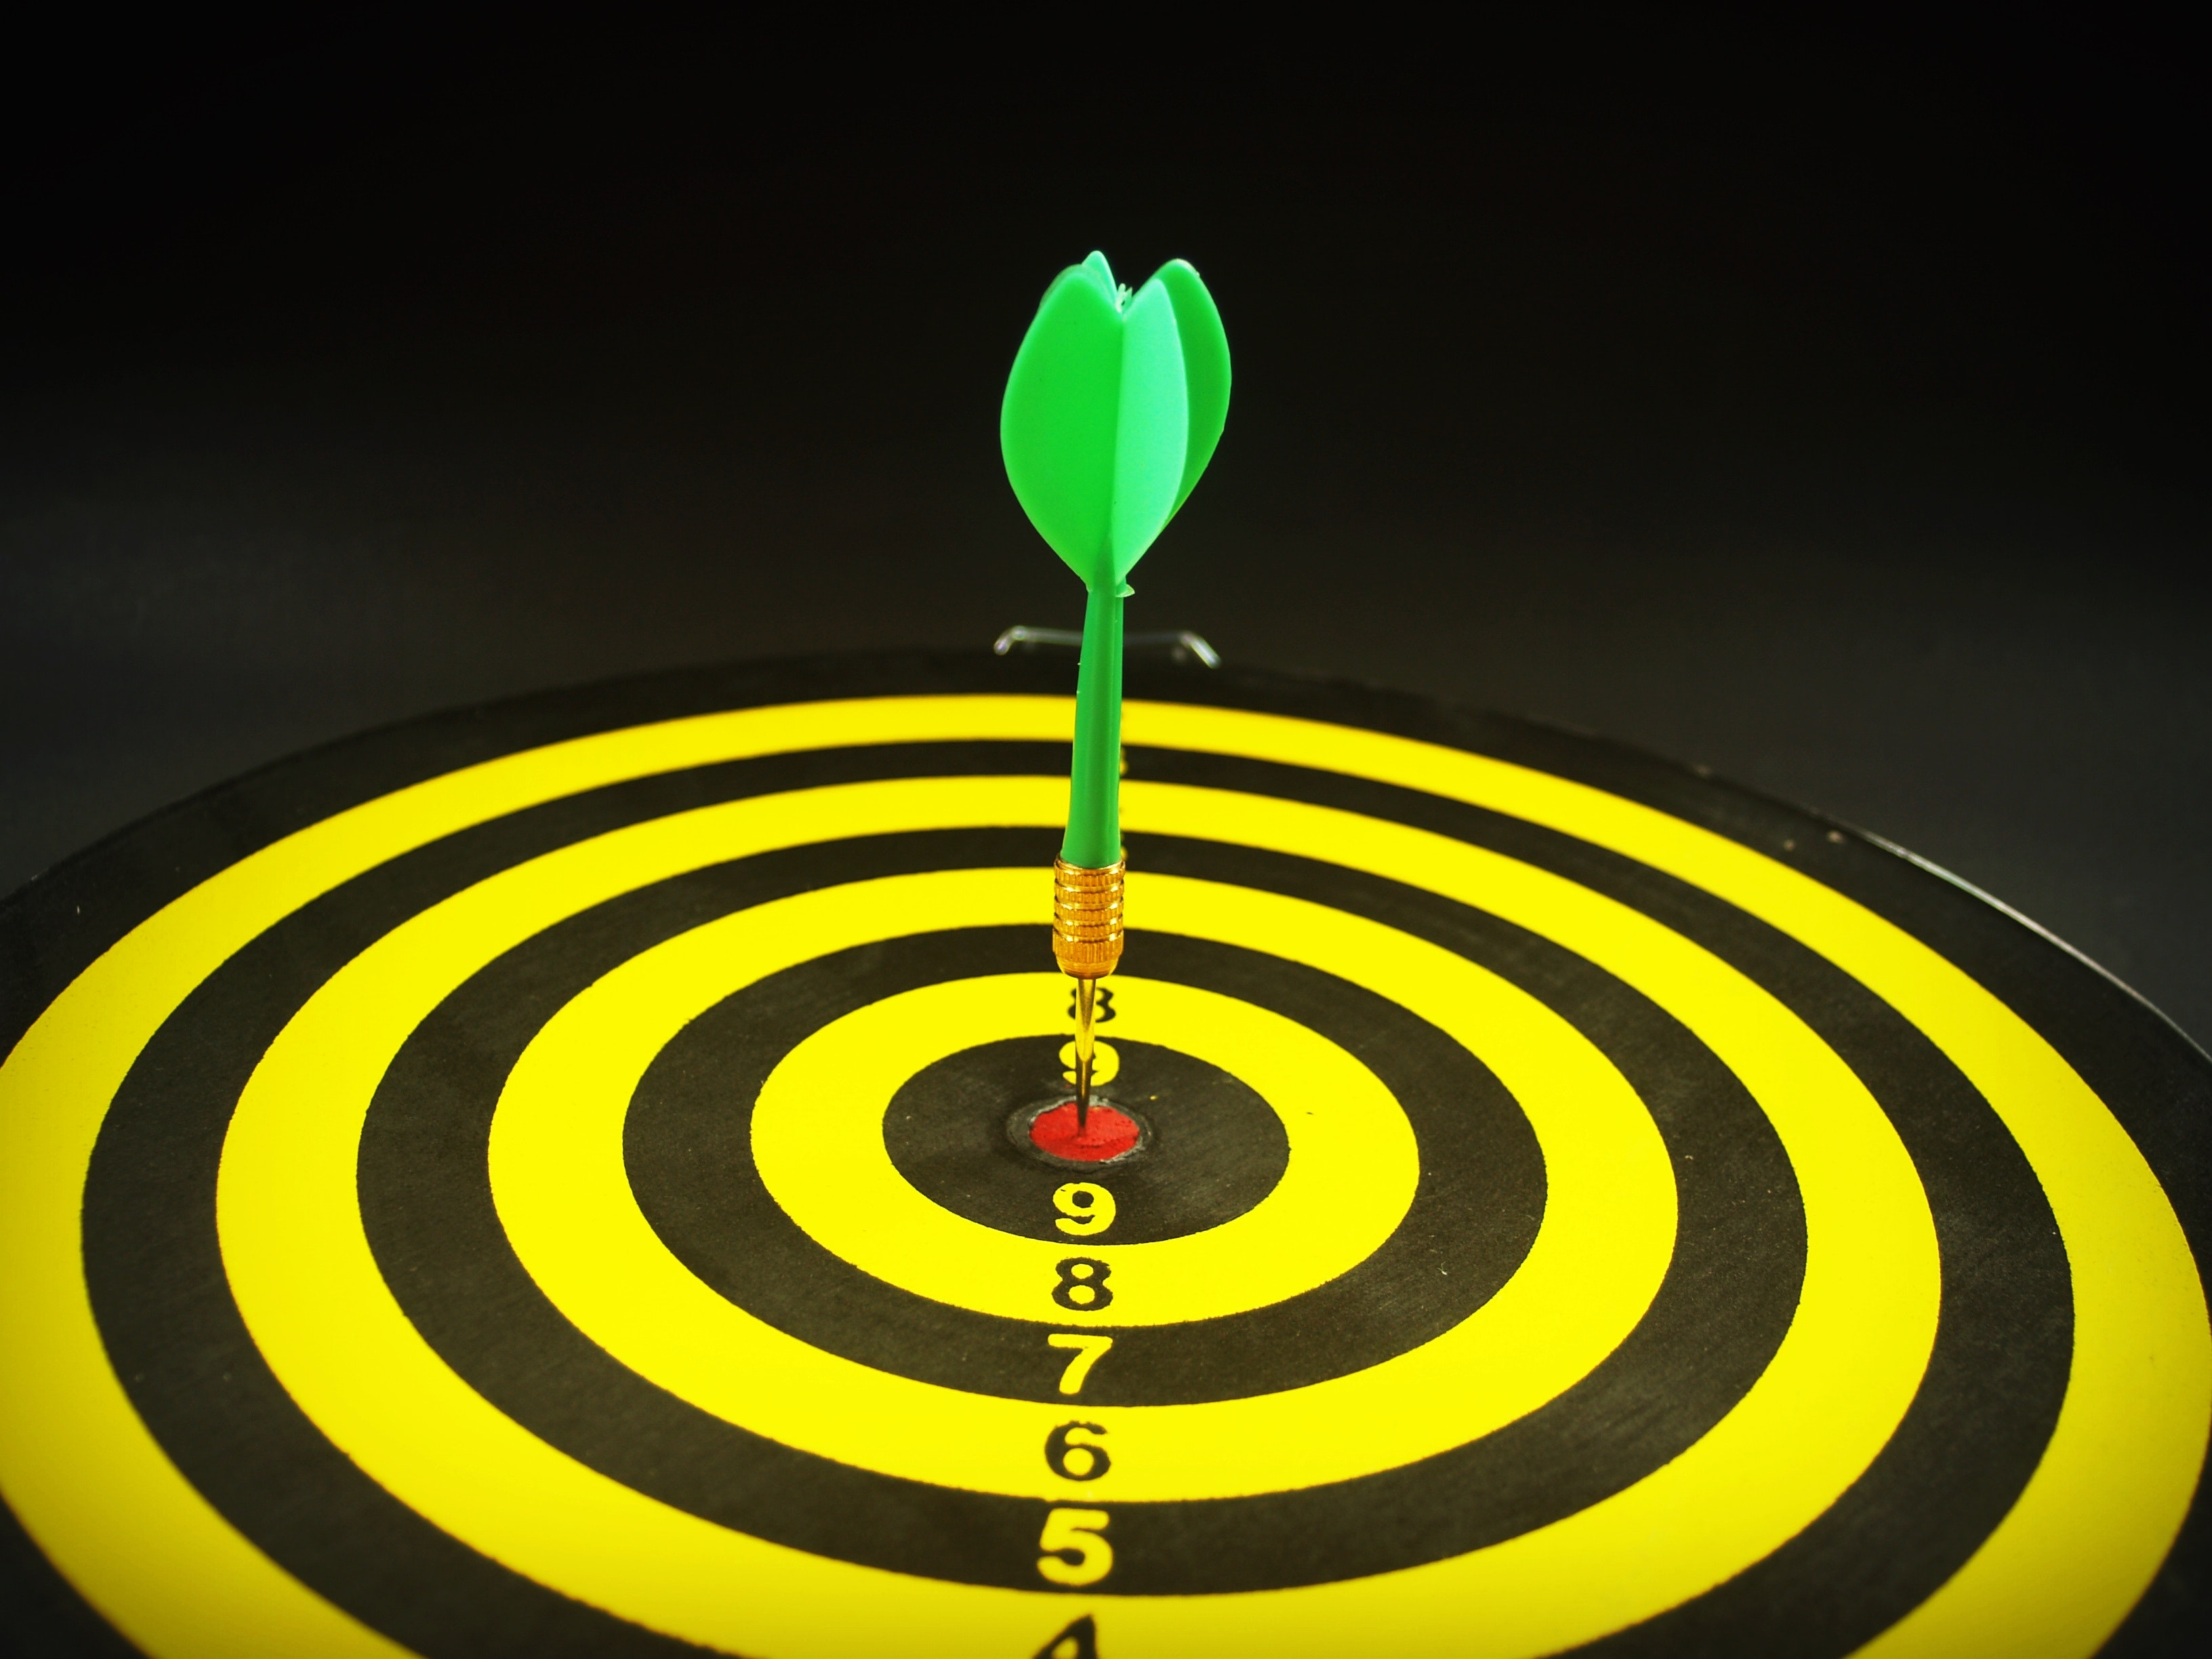 A green dart within a red bullseye on a black and yellow dartboard.